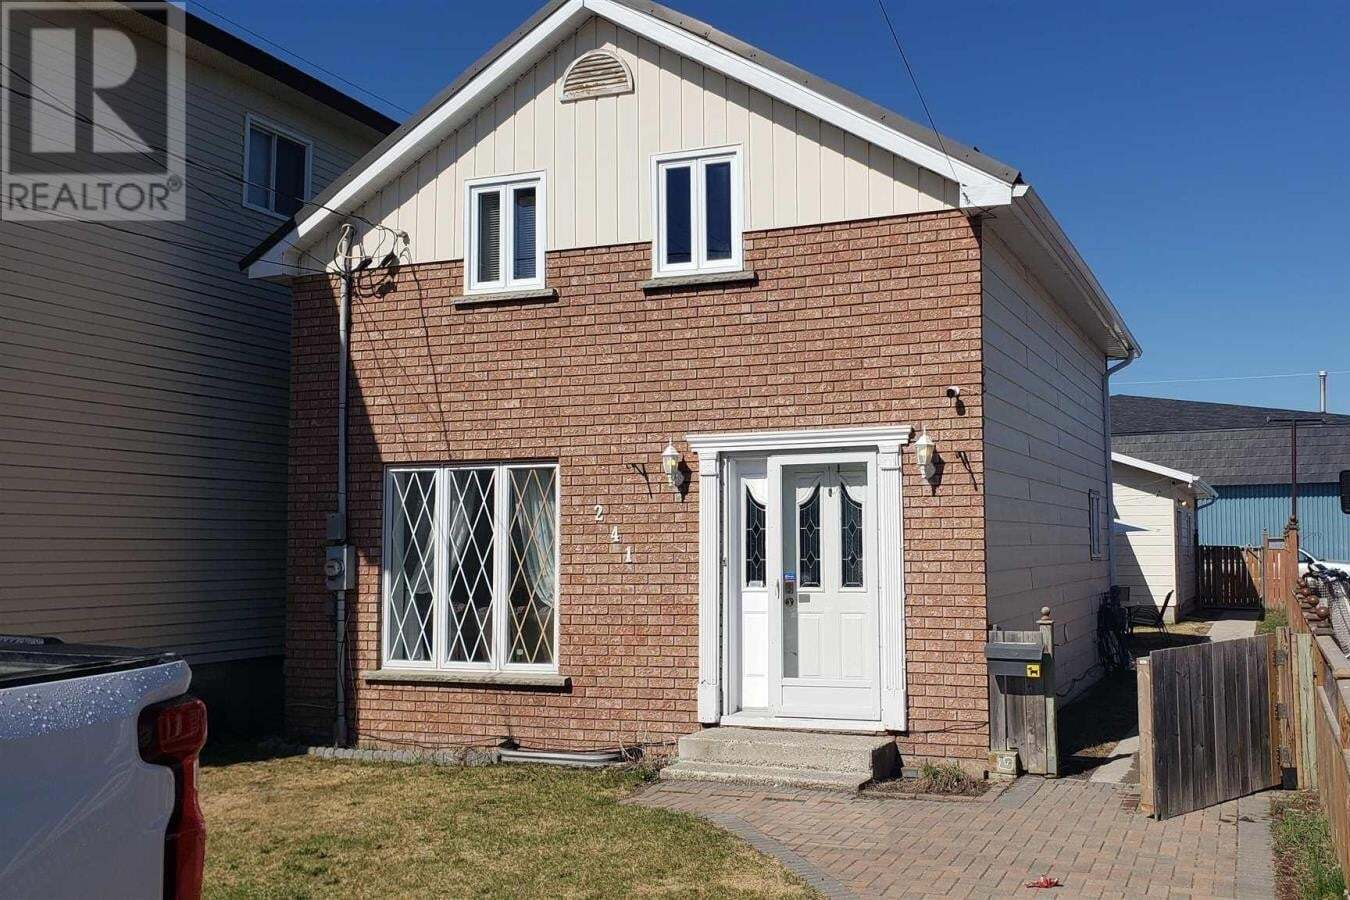 House for sale at 241 Elm St S Timmins Ontario - MLS: TM200802